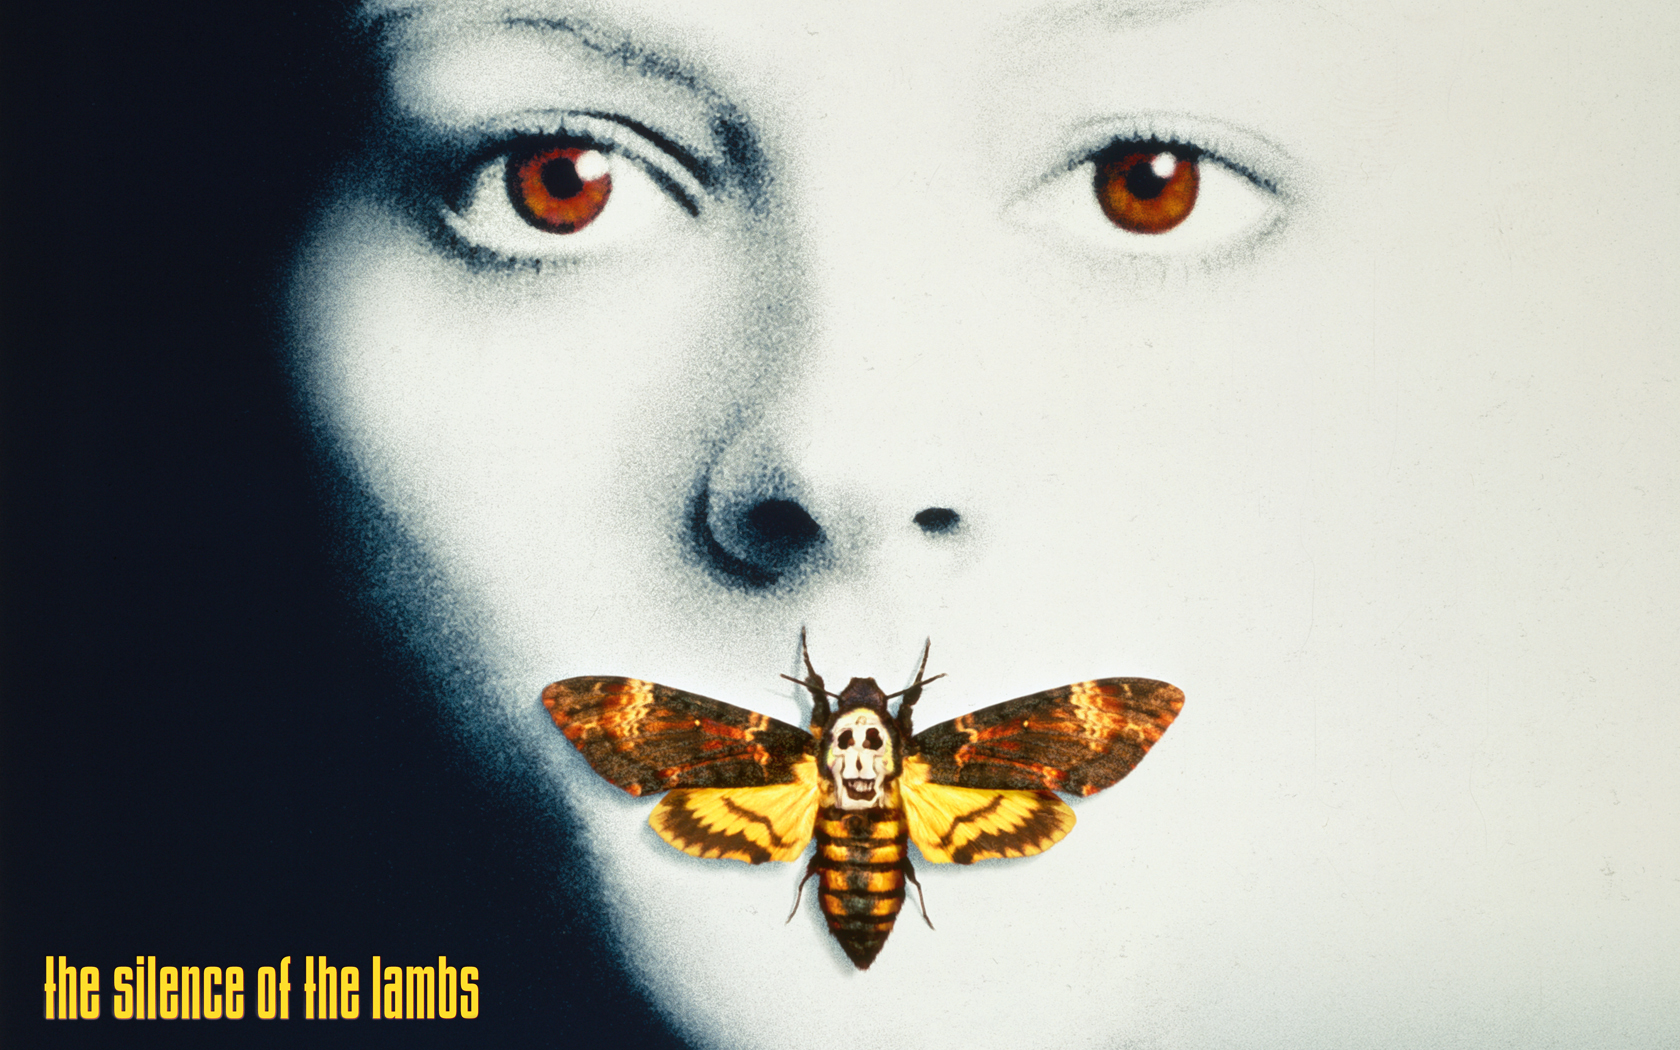 silence-of-the-lambs-storytelling